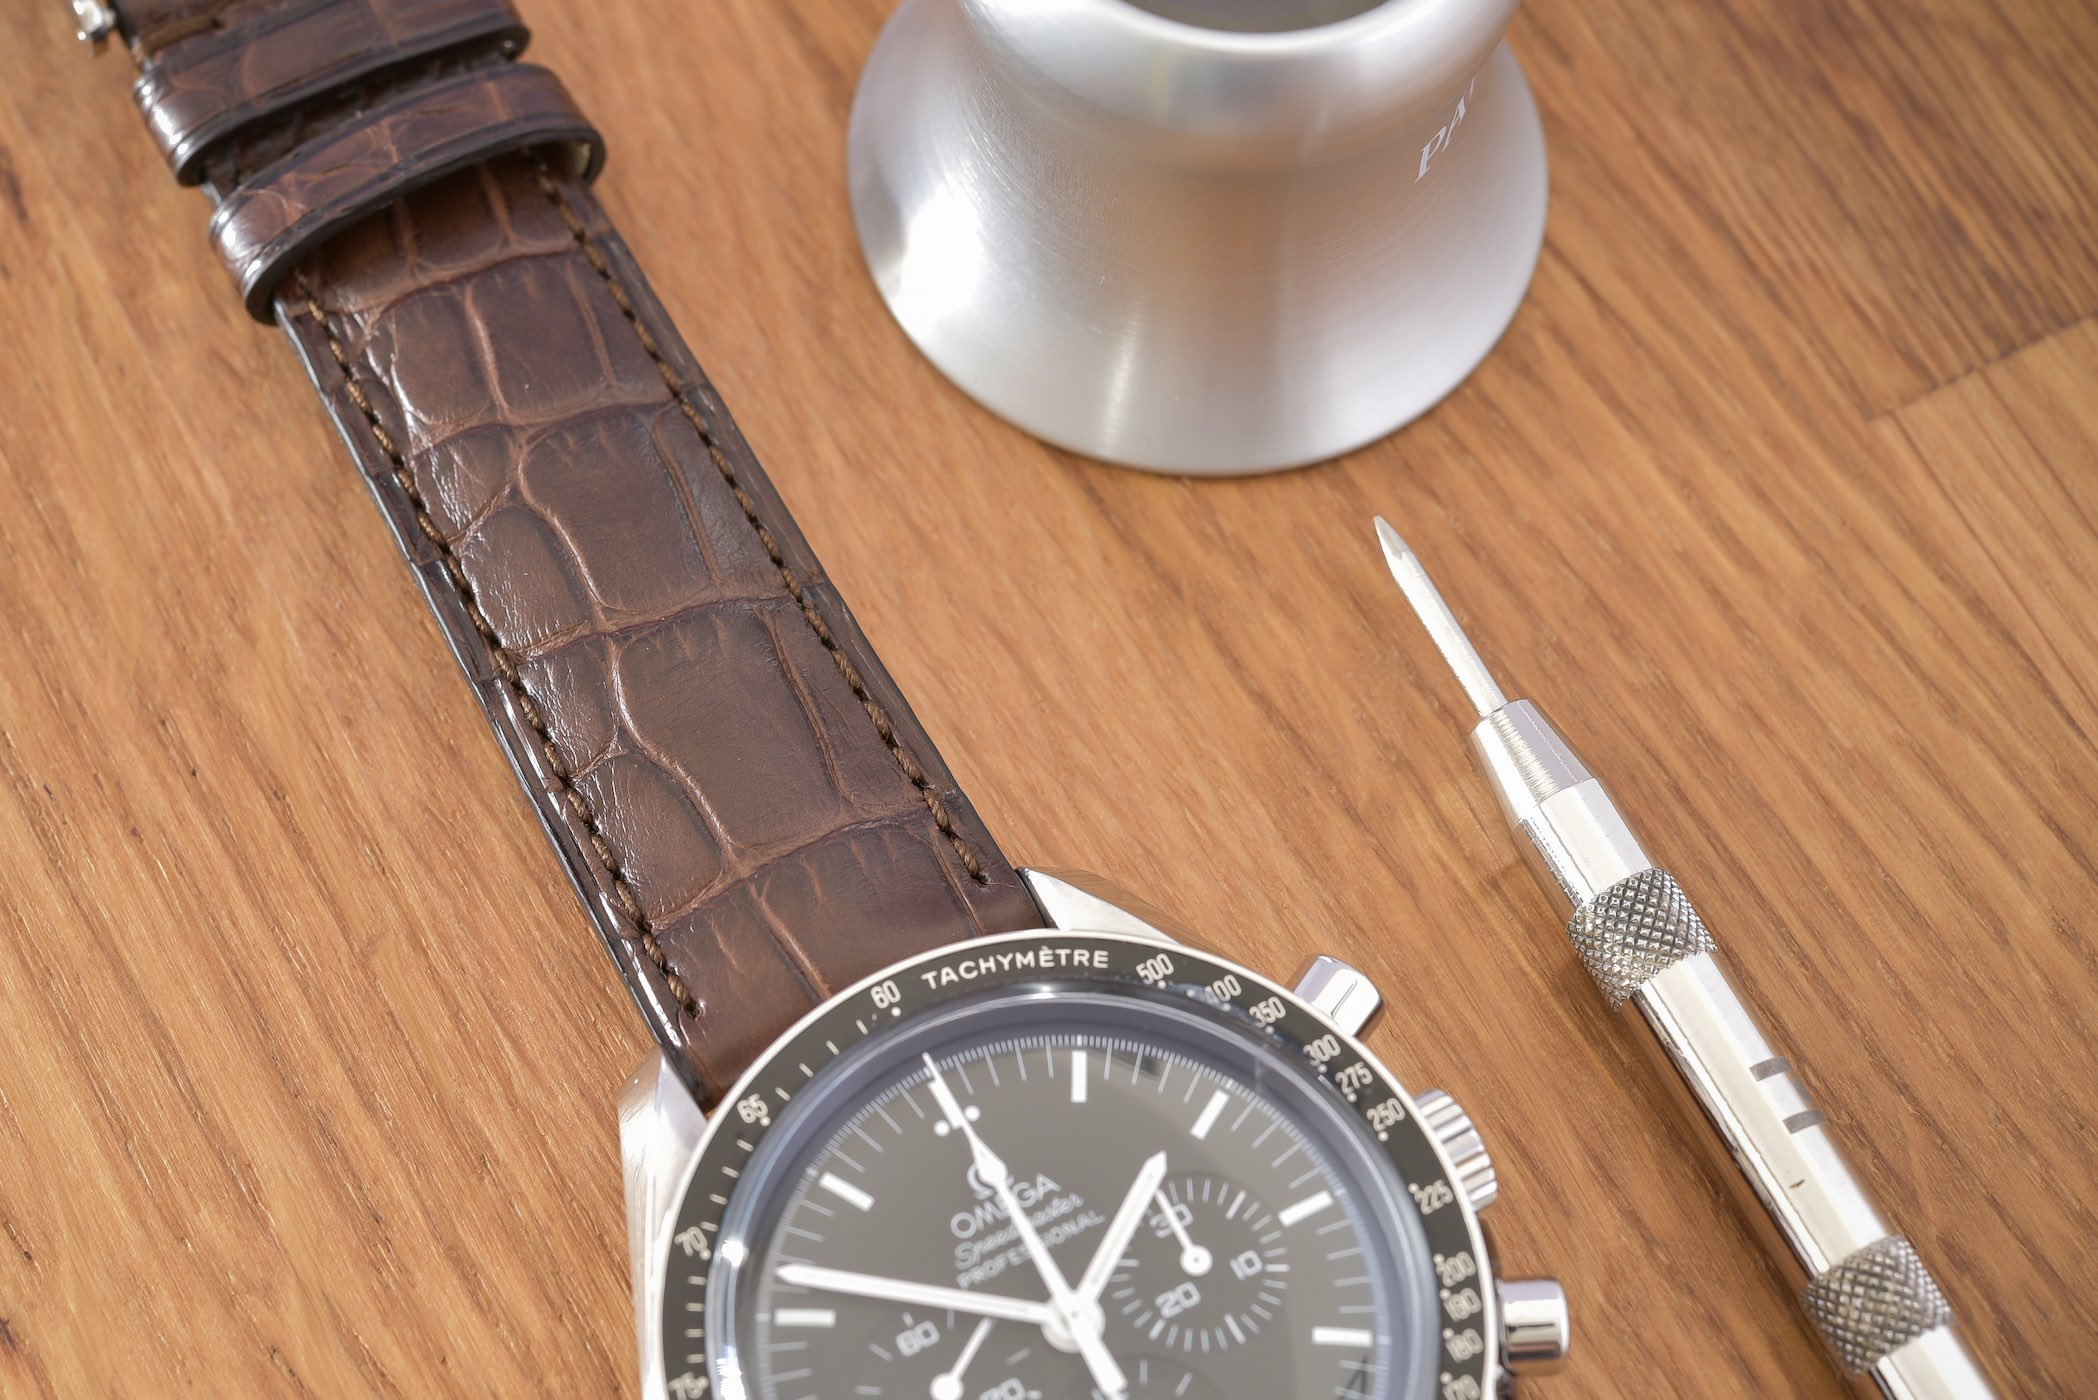 New MONOCHROME Shop - Leather Straps, Watch Rolls, Watch Accessories